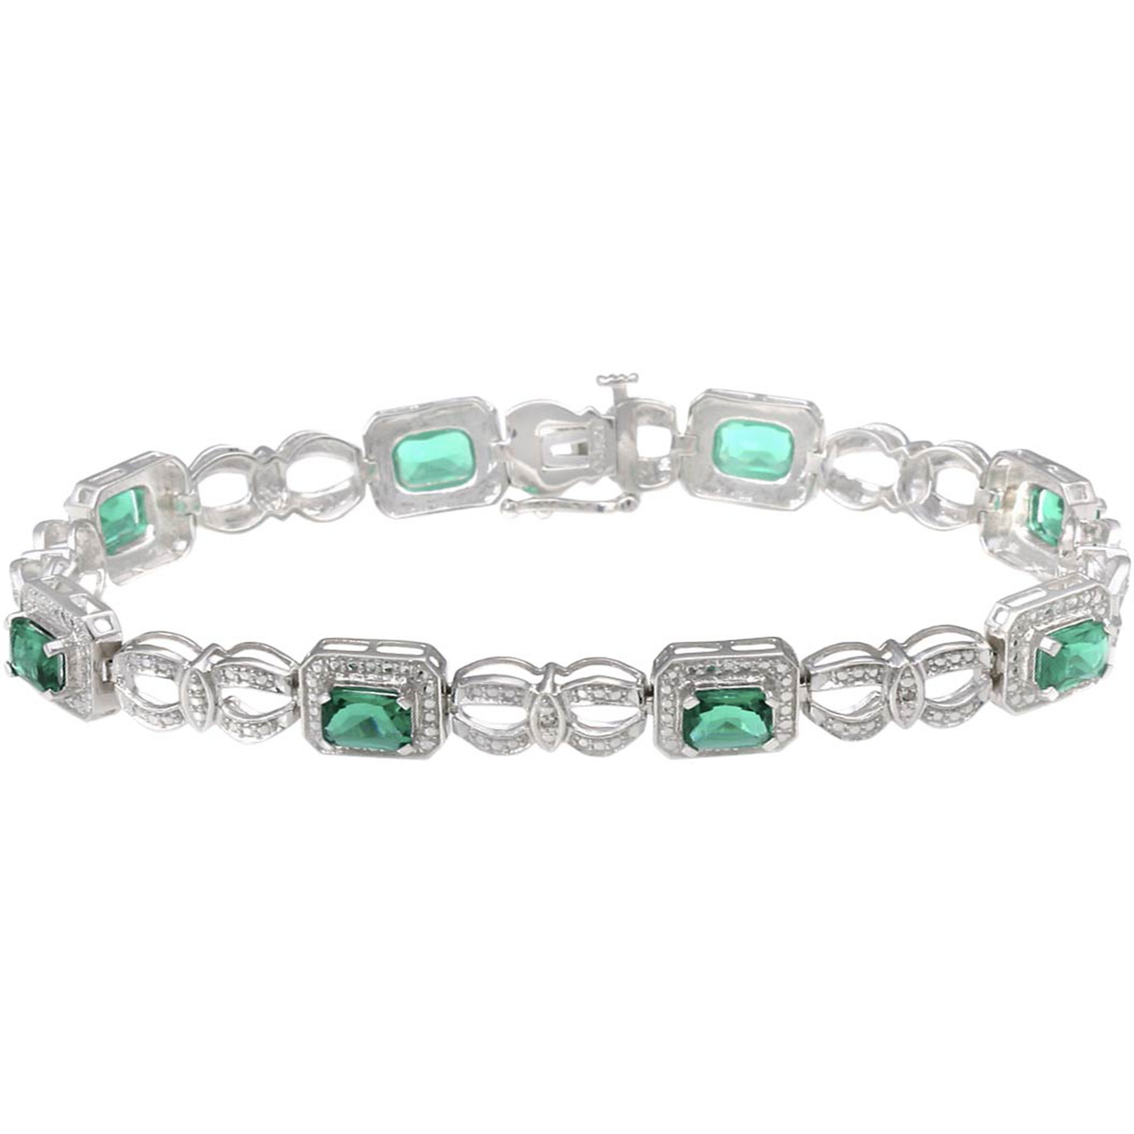 Sterling Silver Simulated Emerald Bracelet With Diamond Accents